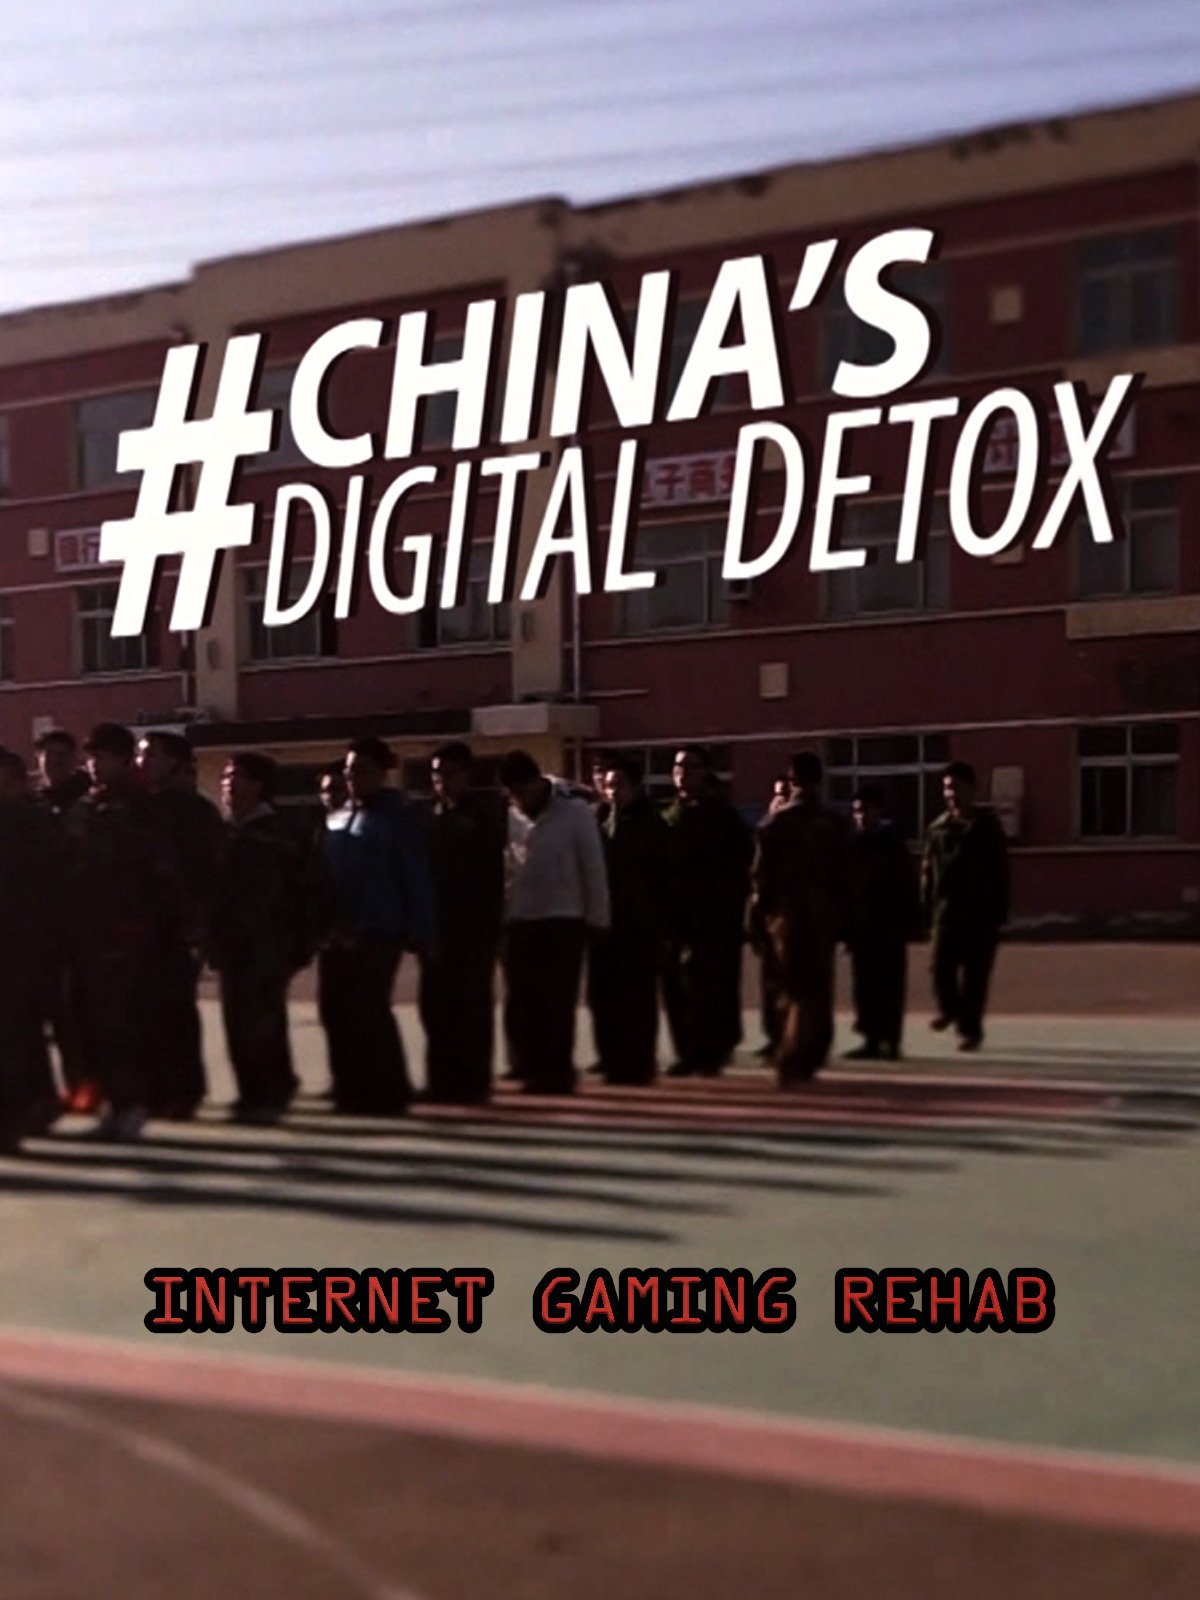 China's Digital Detox